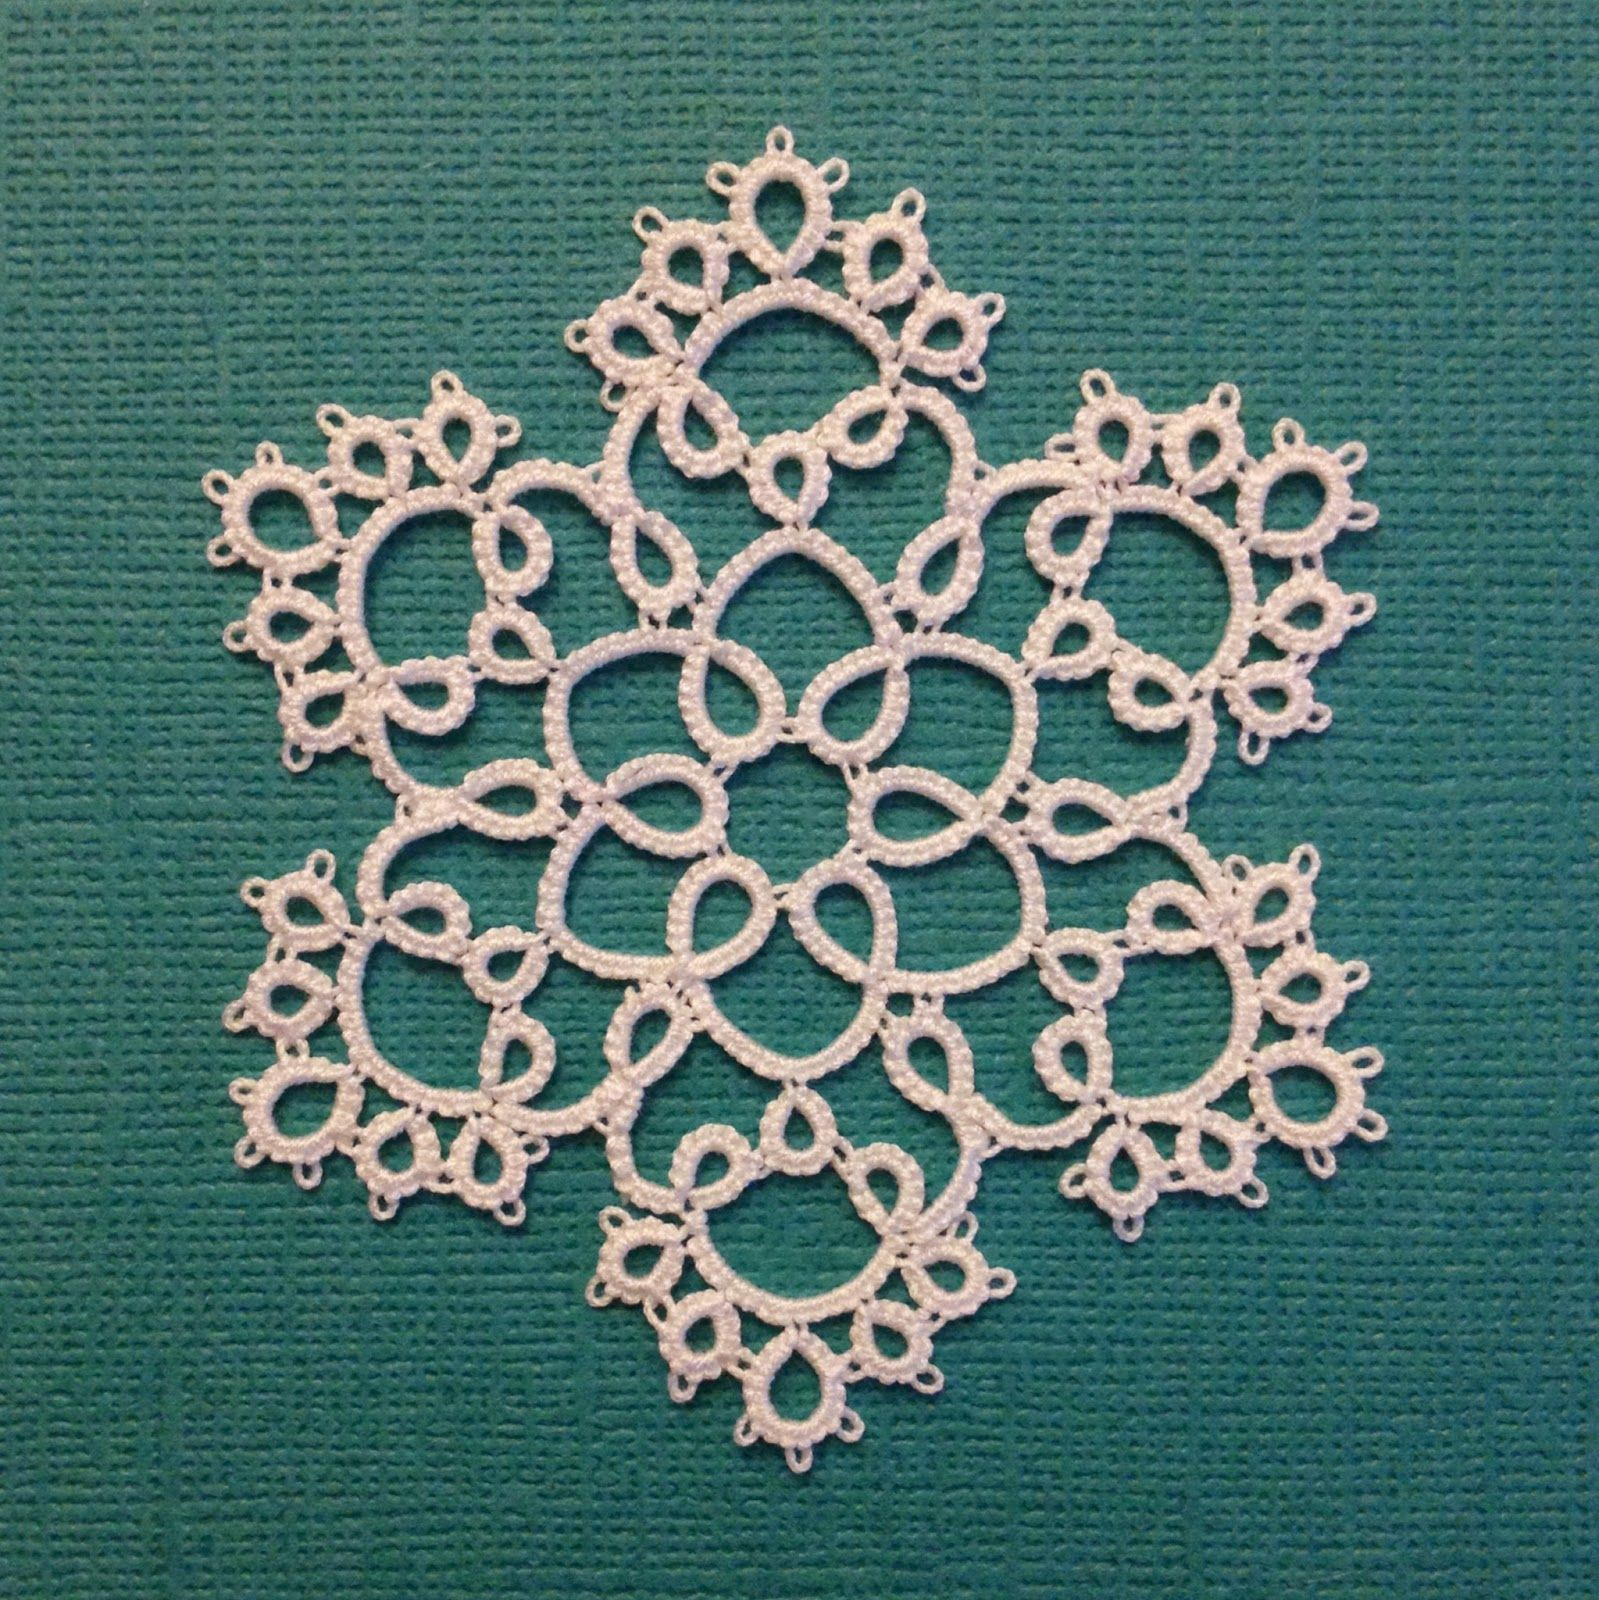 Tatting By The Bay Free Patterns Robin Perfetti Is So Nice To Offer Crochet Coaster Diagrams A Few Pretty Snowflakes Such Wonderful She Does Have For Sale On Etsy Under Name